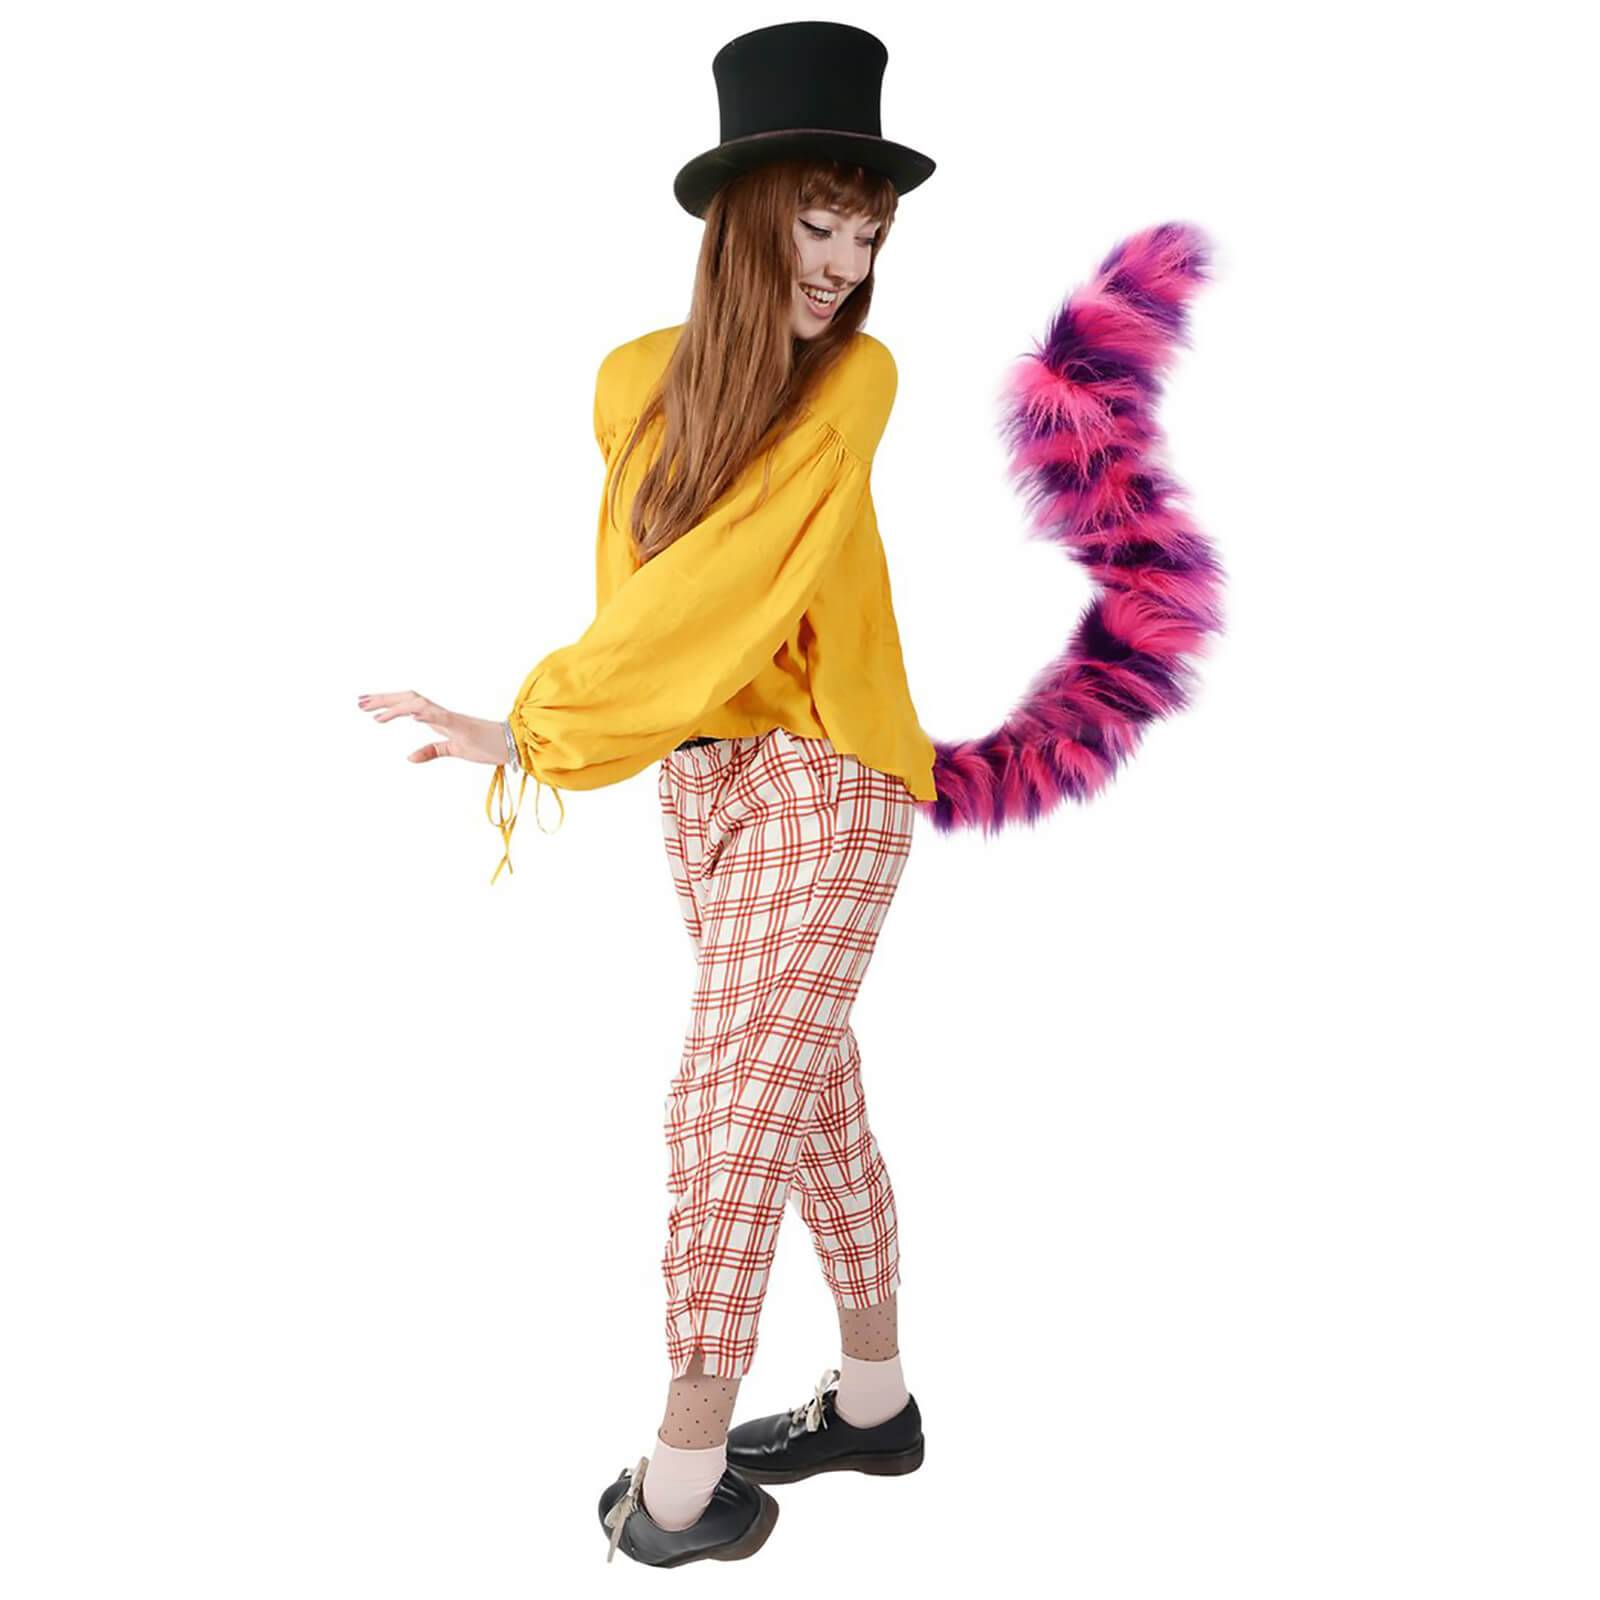 TellTails Wearable Crazy Cat Tail for Adults